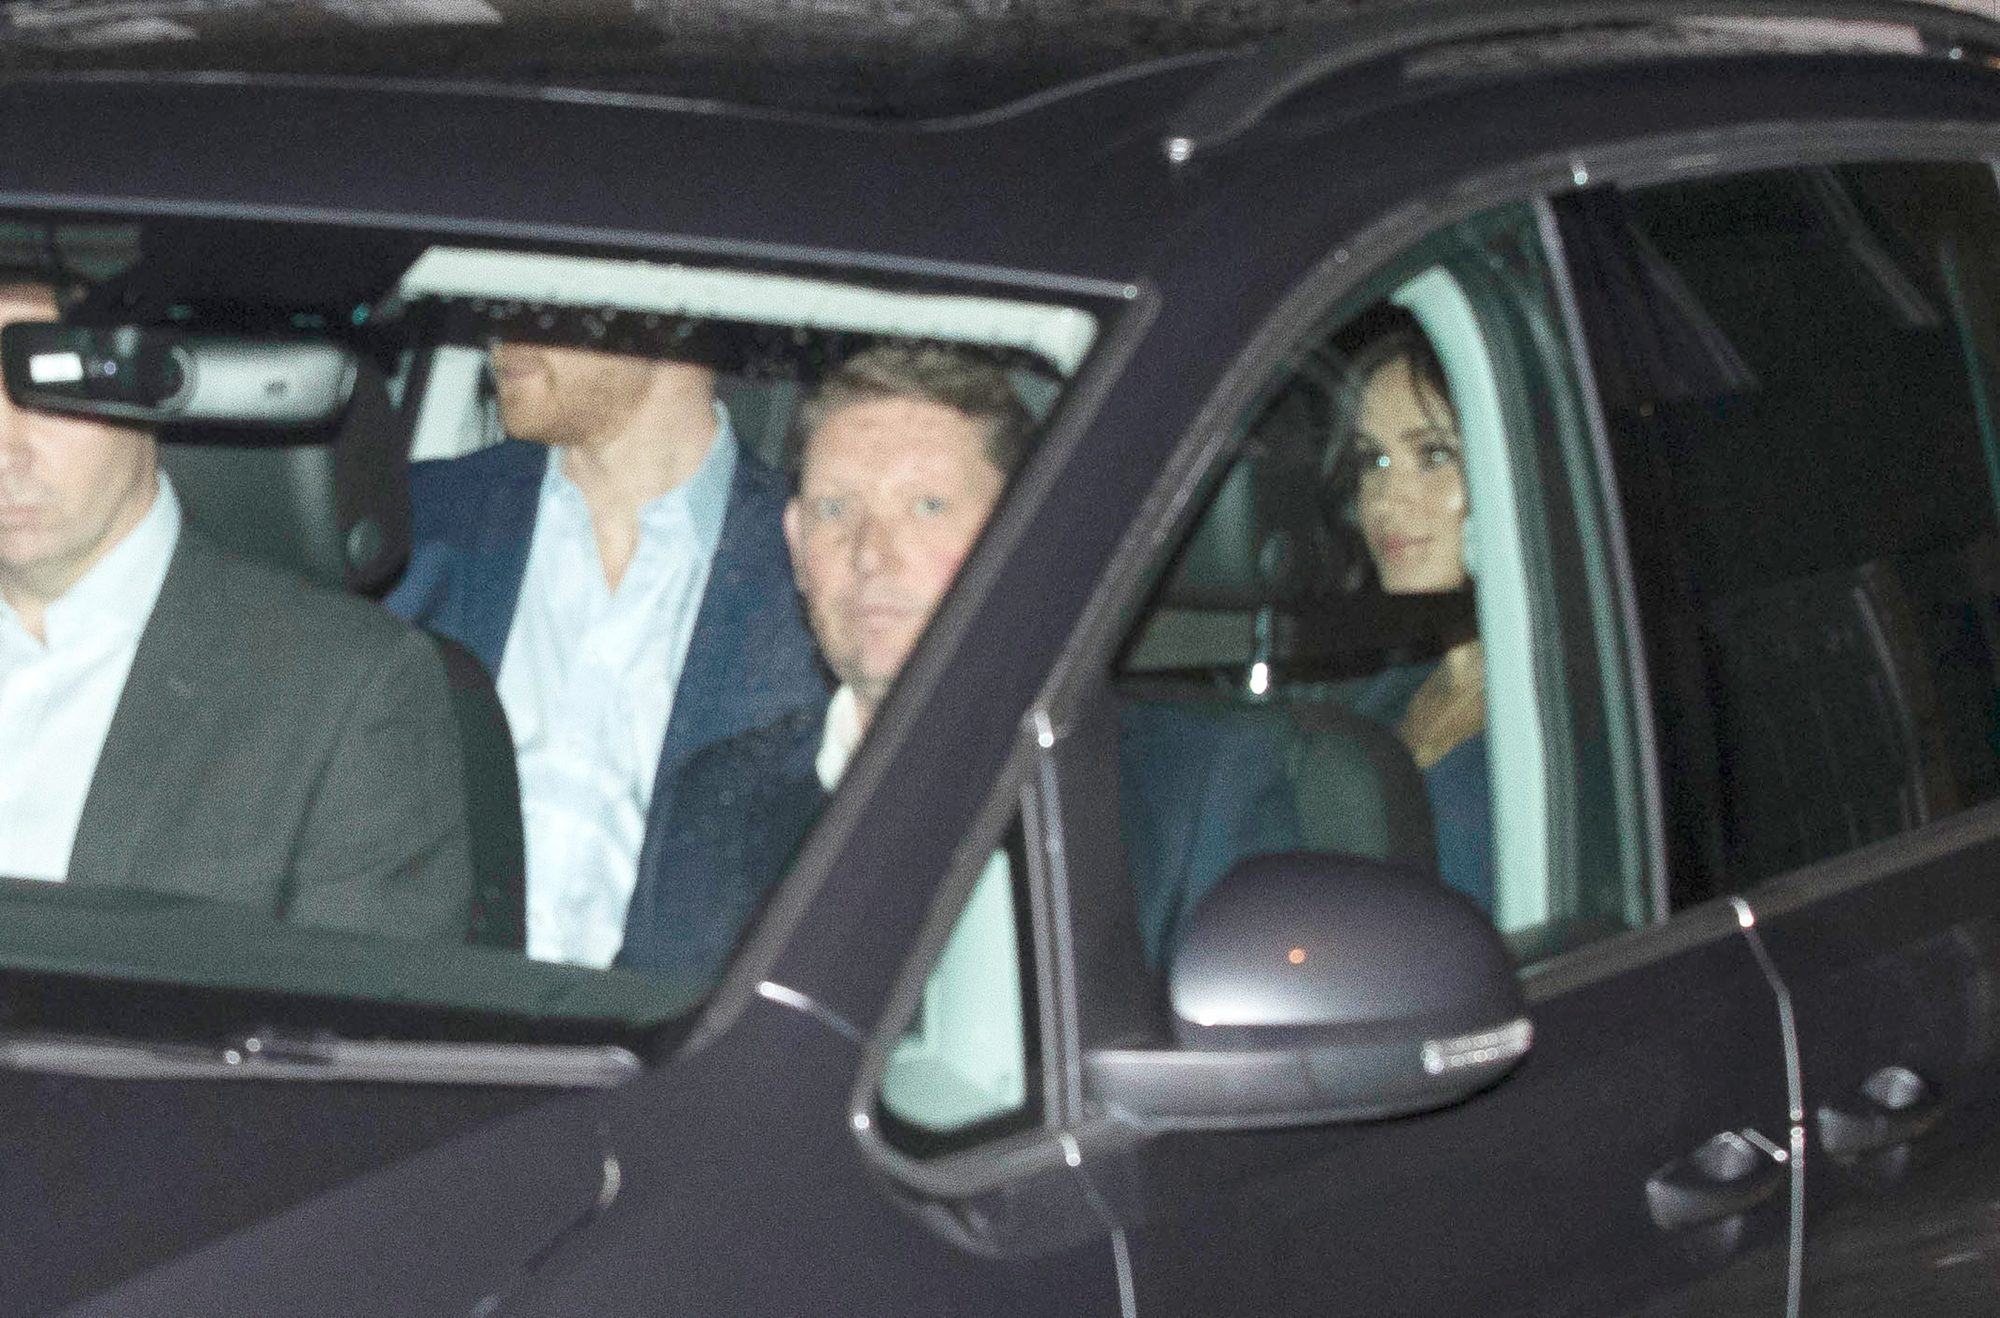 EXCLUSIVE: The Duke and Duchess of Sussex seen arriving at St Luke's Church this Evening.